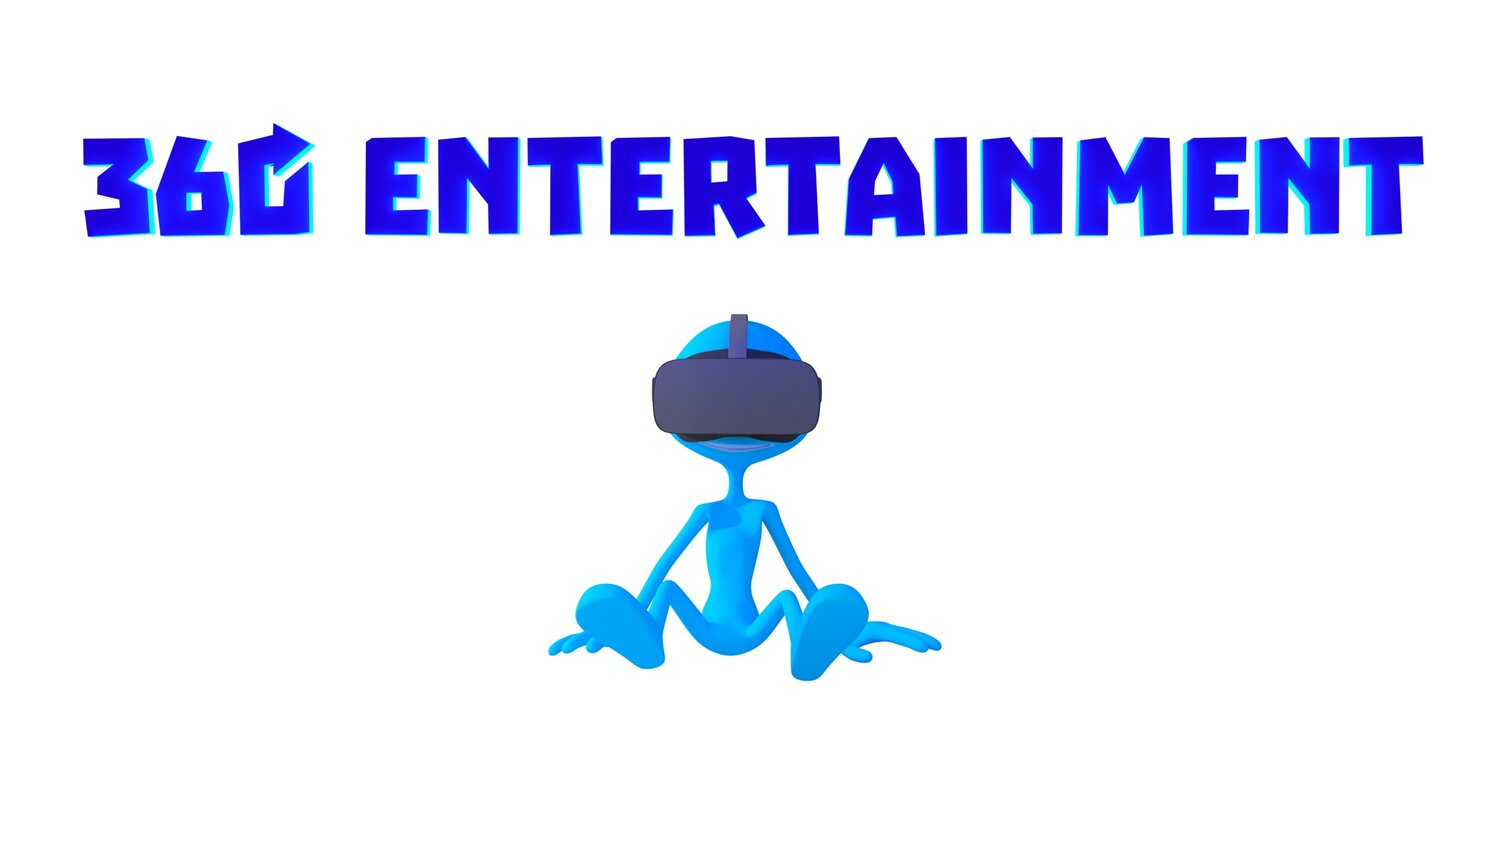 360 ENTERTAINMENT